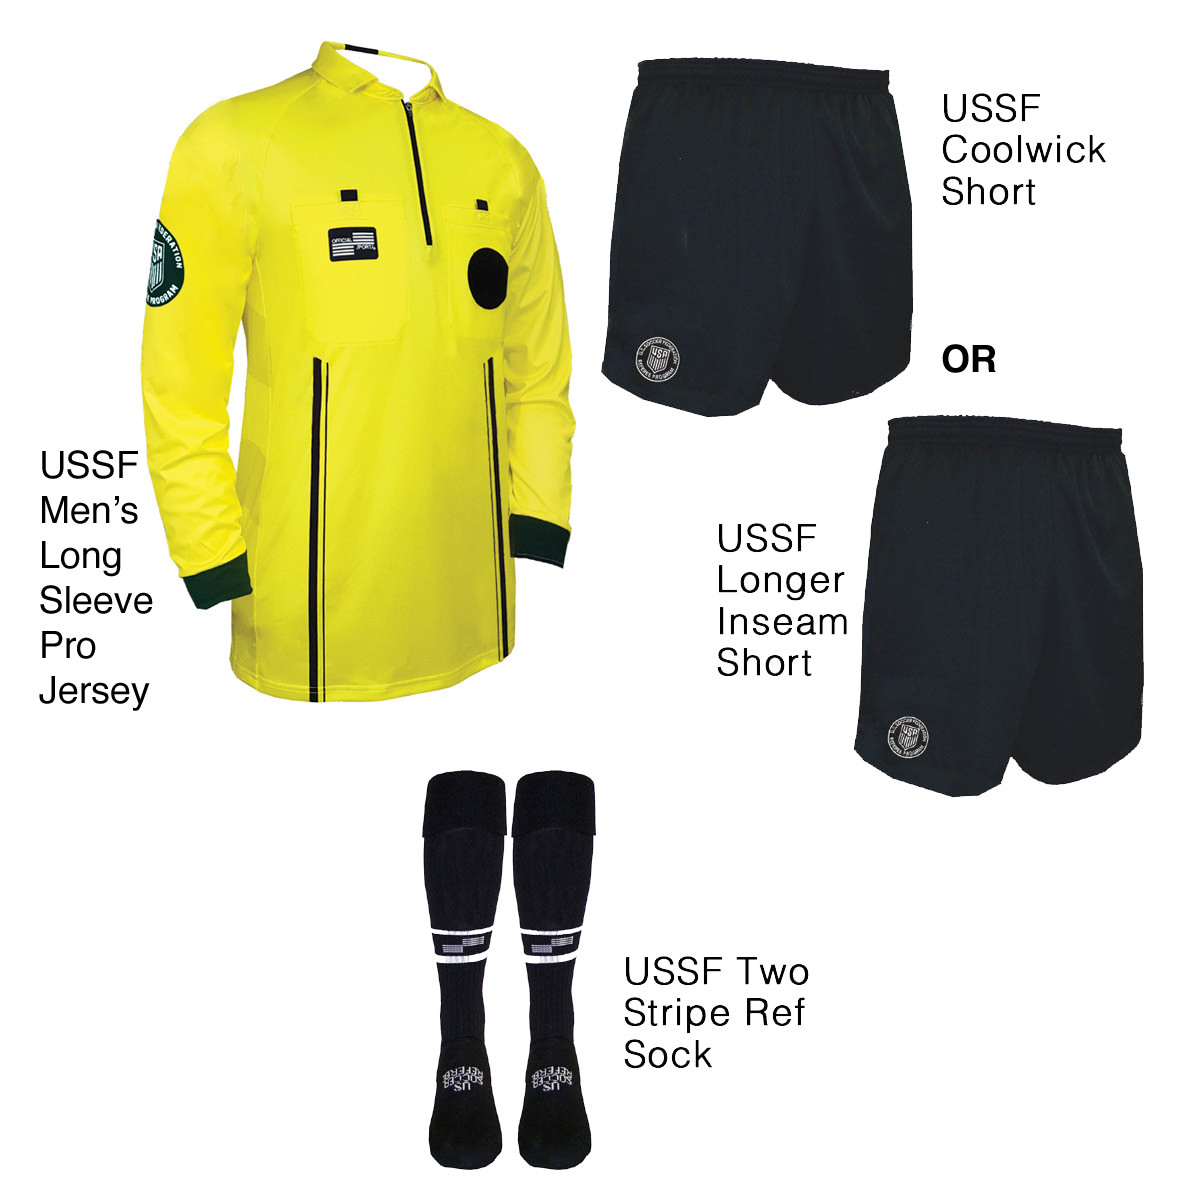 e2404c4f59f USSF Pro Long Sleeve Kit - Official Sports International